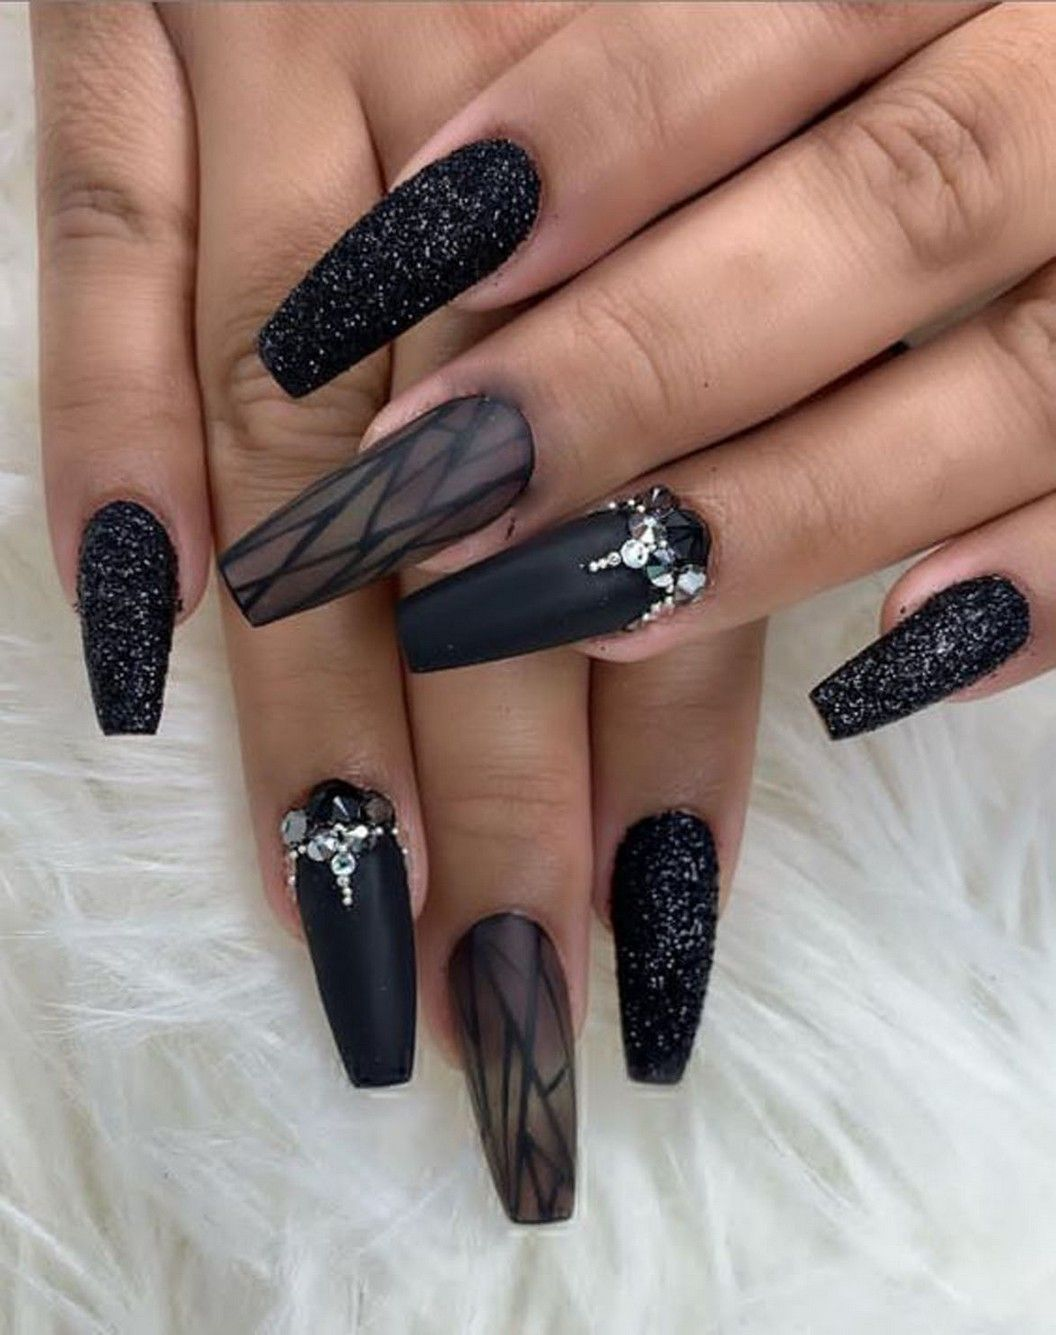 22 Best Matte Black Coffin Nail Ideas 19 In 2020 Nails Design With Rhinestones Black Nail Designs Coffin Nails Designs